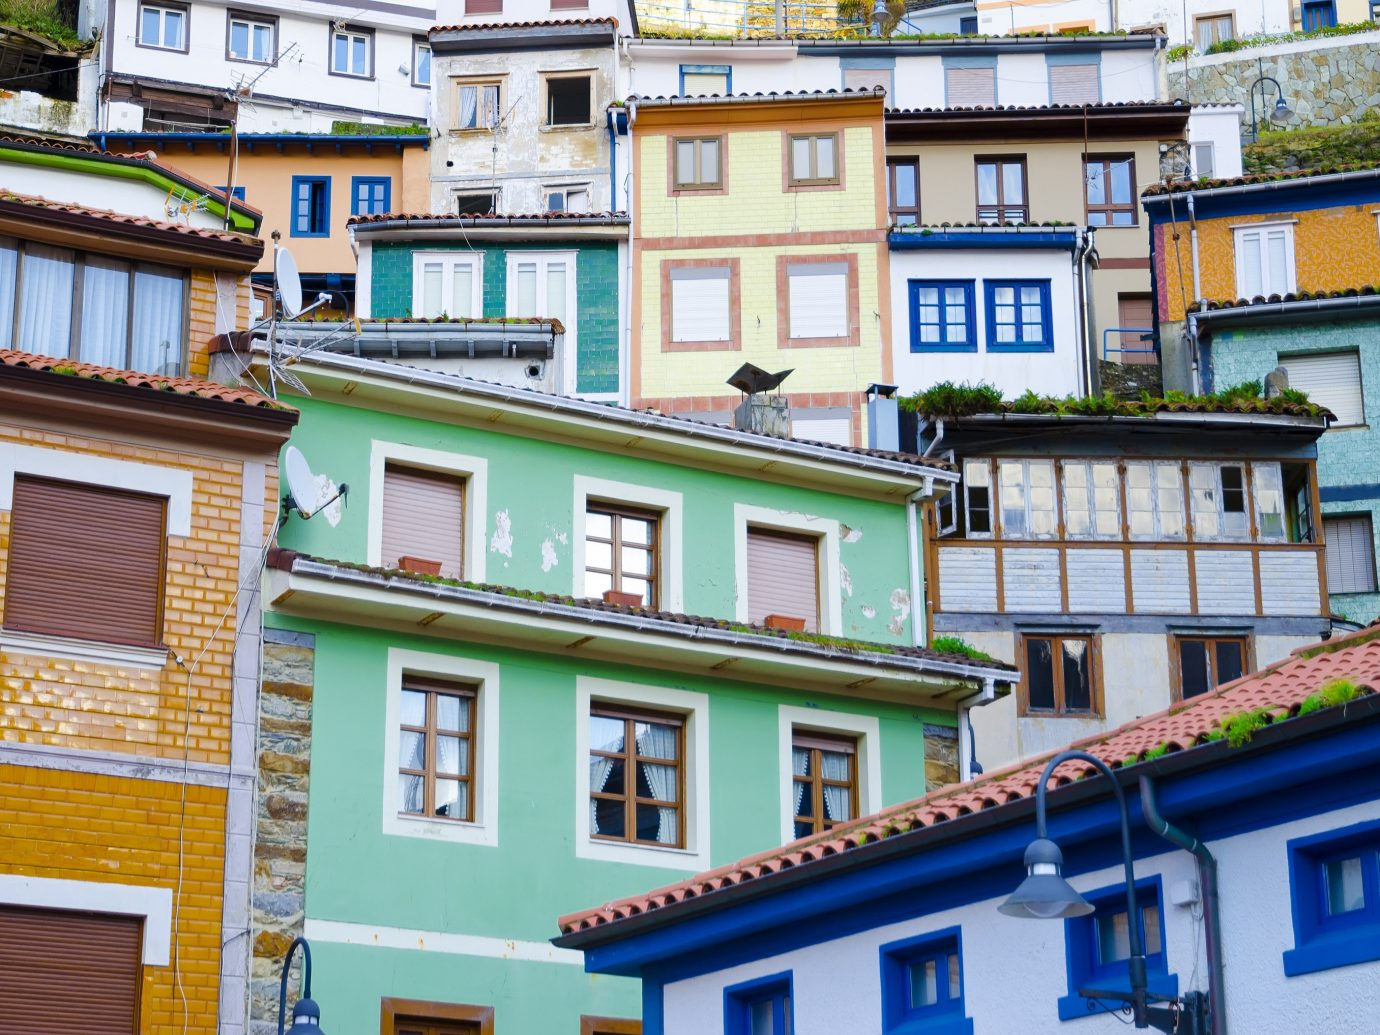 europe Spain Trip Ideas neighbourhood Town building house residential area window Architecture facade City Balcony apartment roof street home real estate mixed use